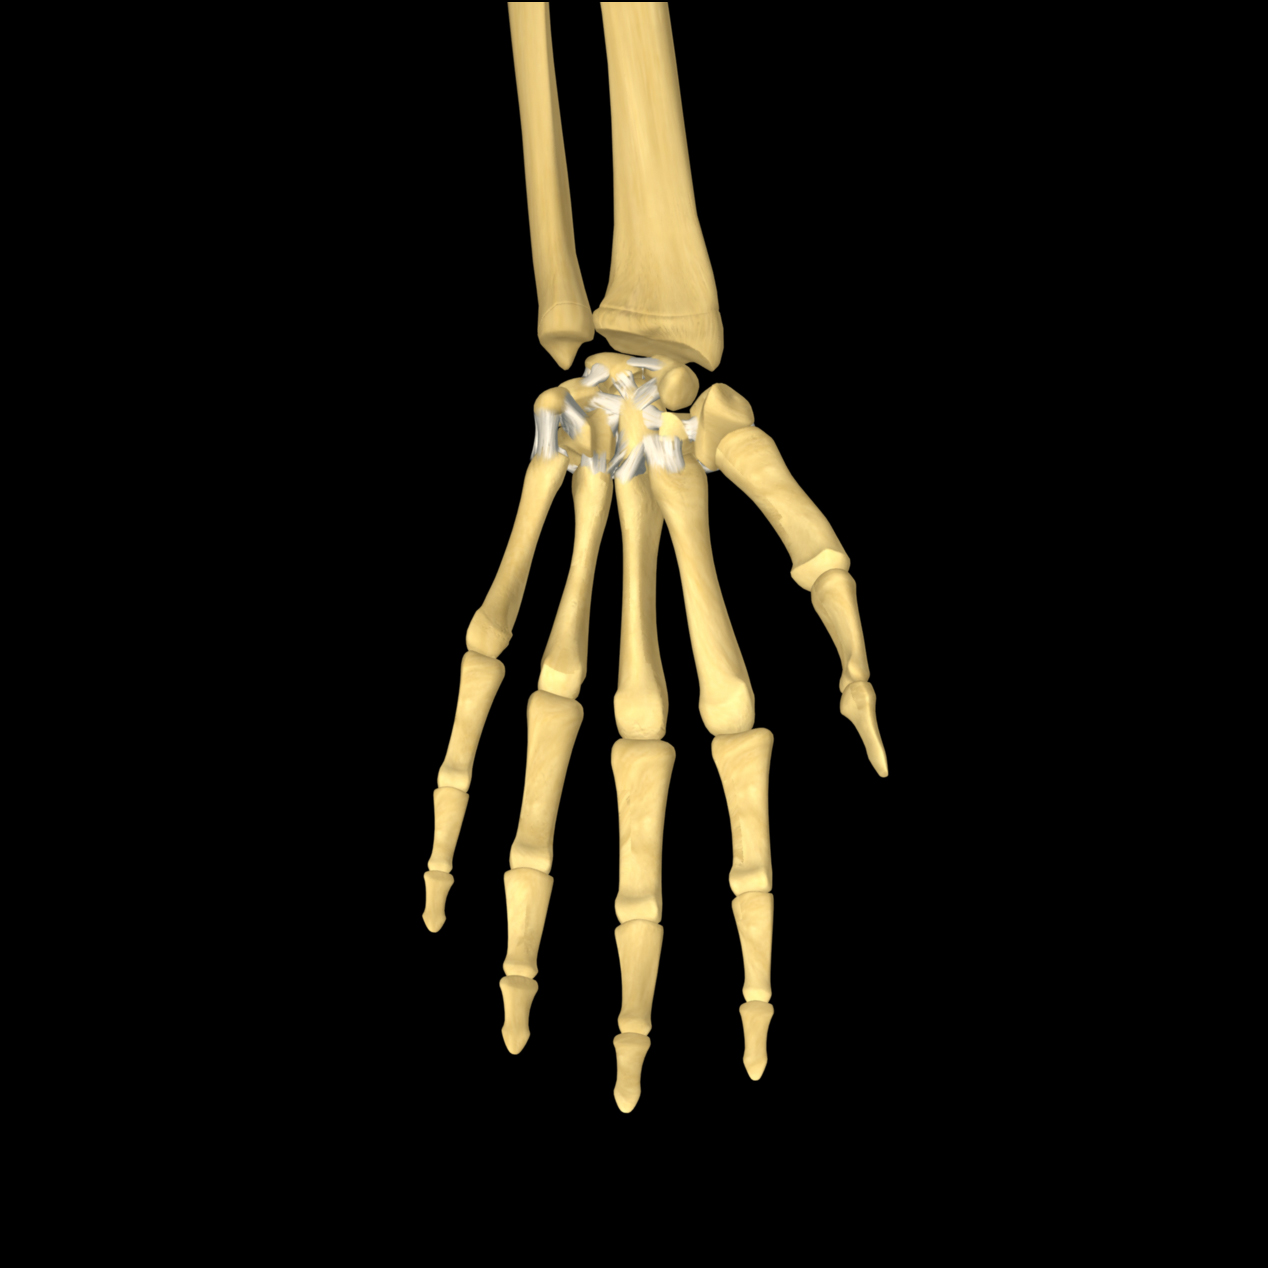 Anatomyexpert Joints And Ligaments Of The Carpal Bones Structure